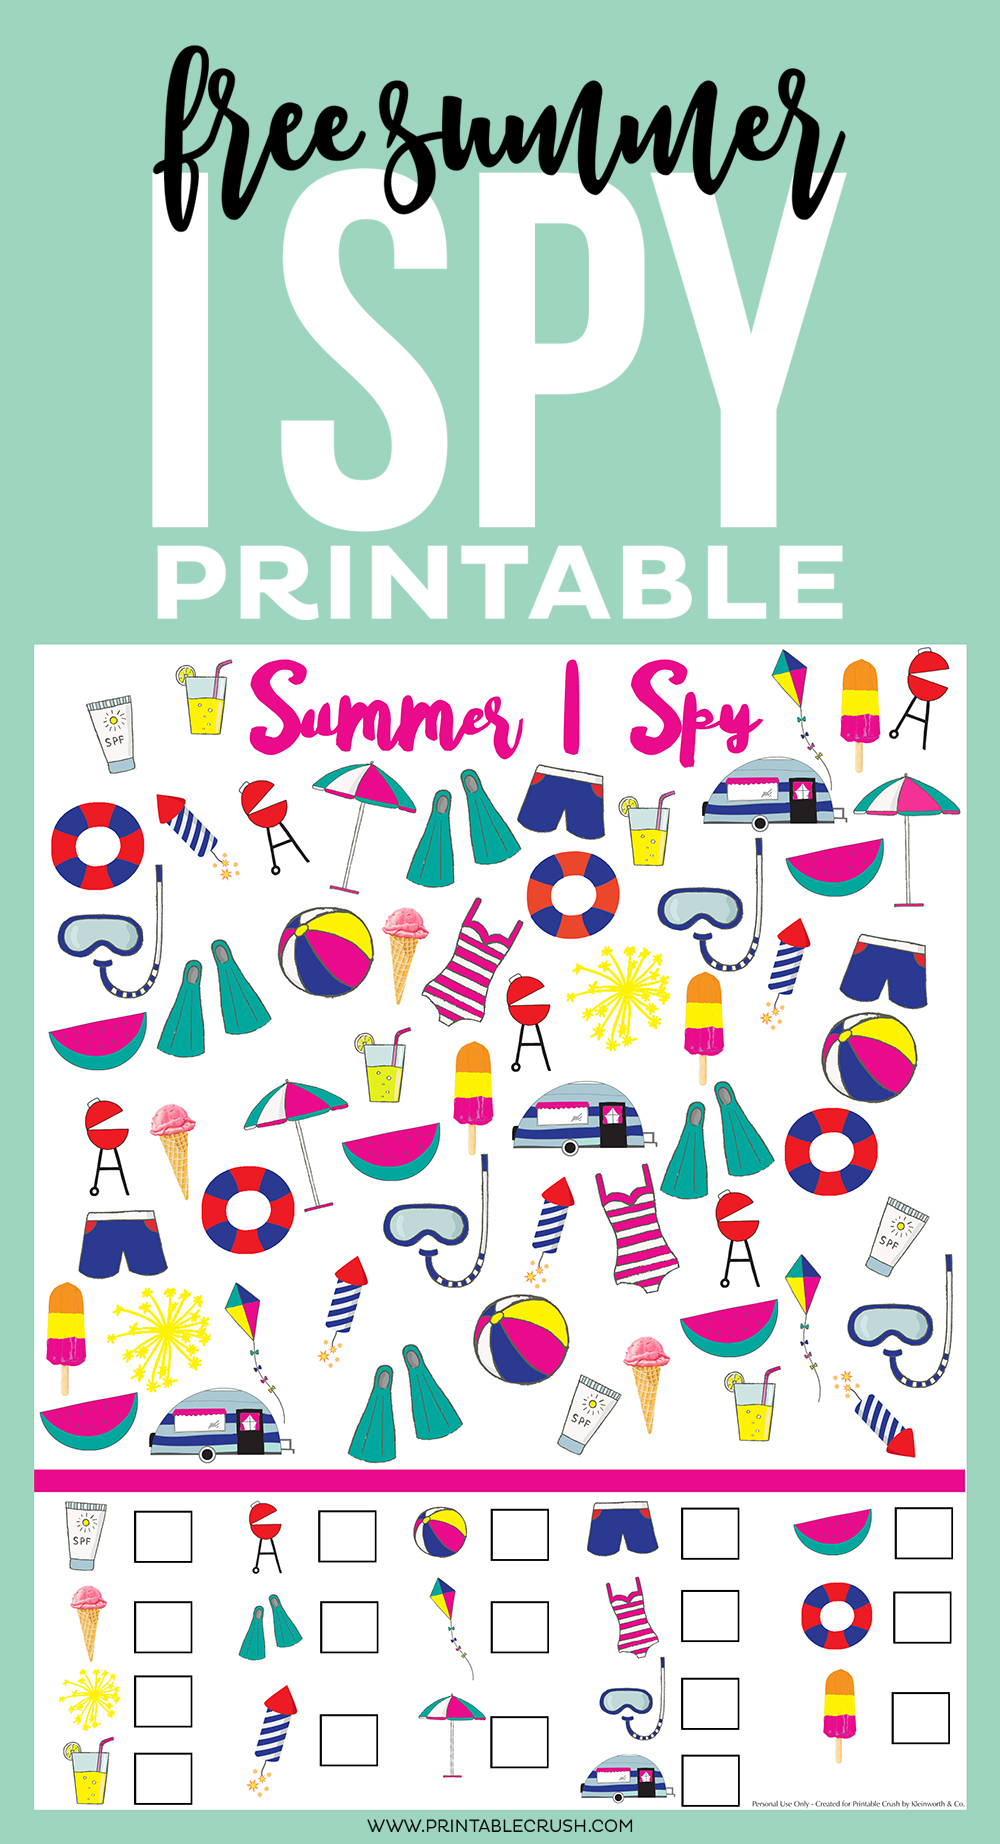 photo about I Spy Printable referred to as Absolutely free Summer months I Spy Printable - Printable Crush